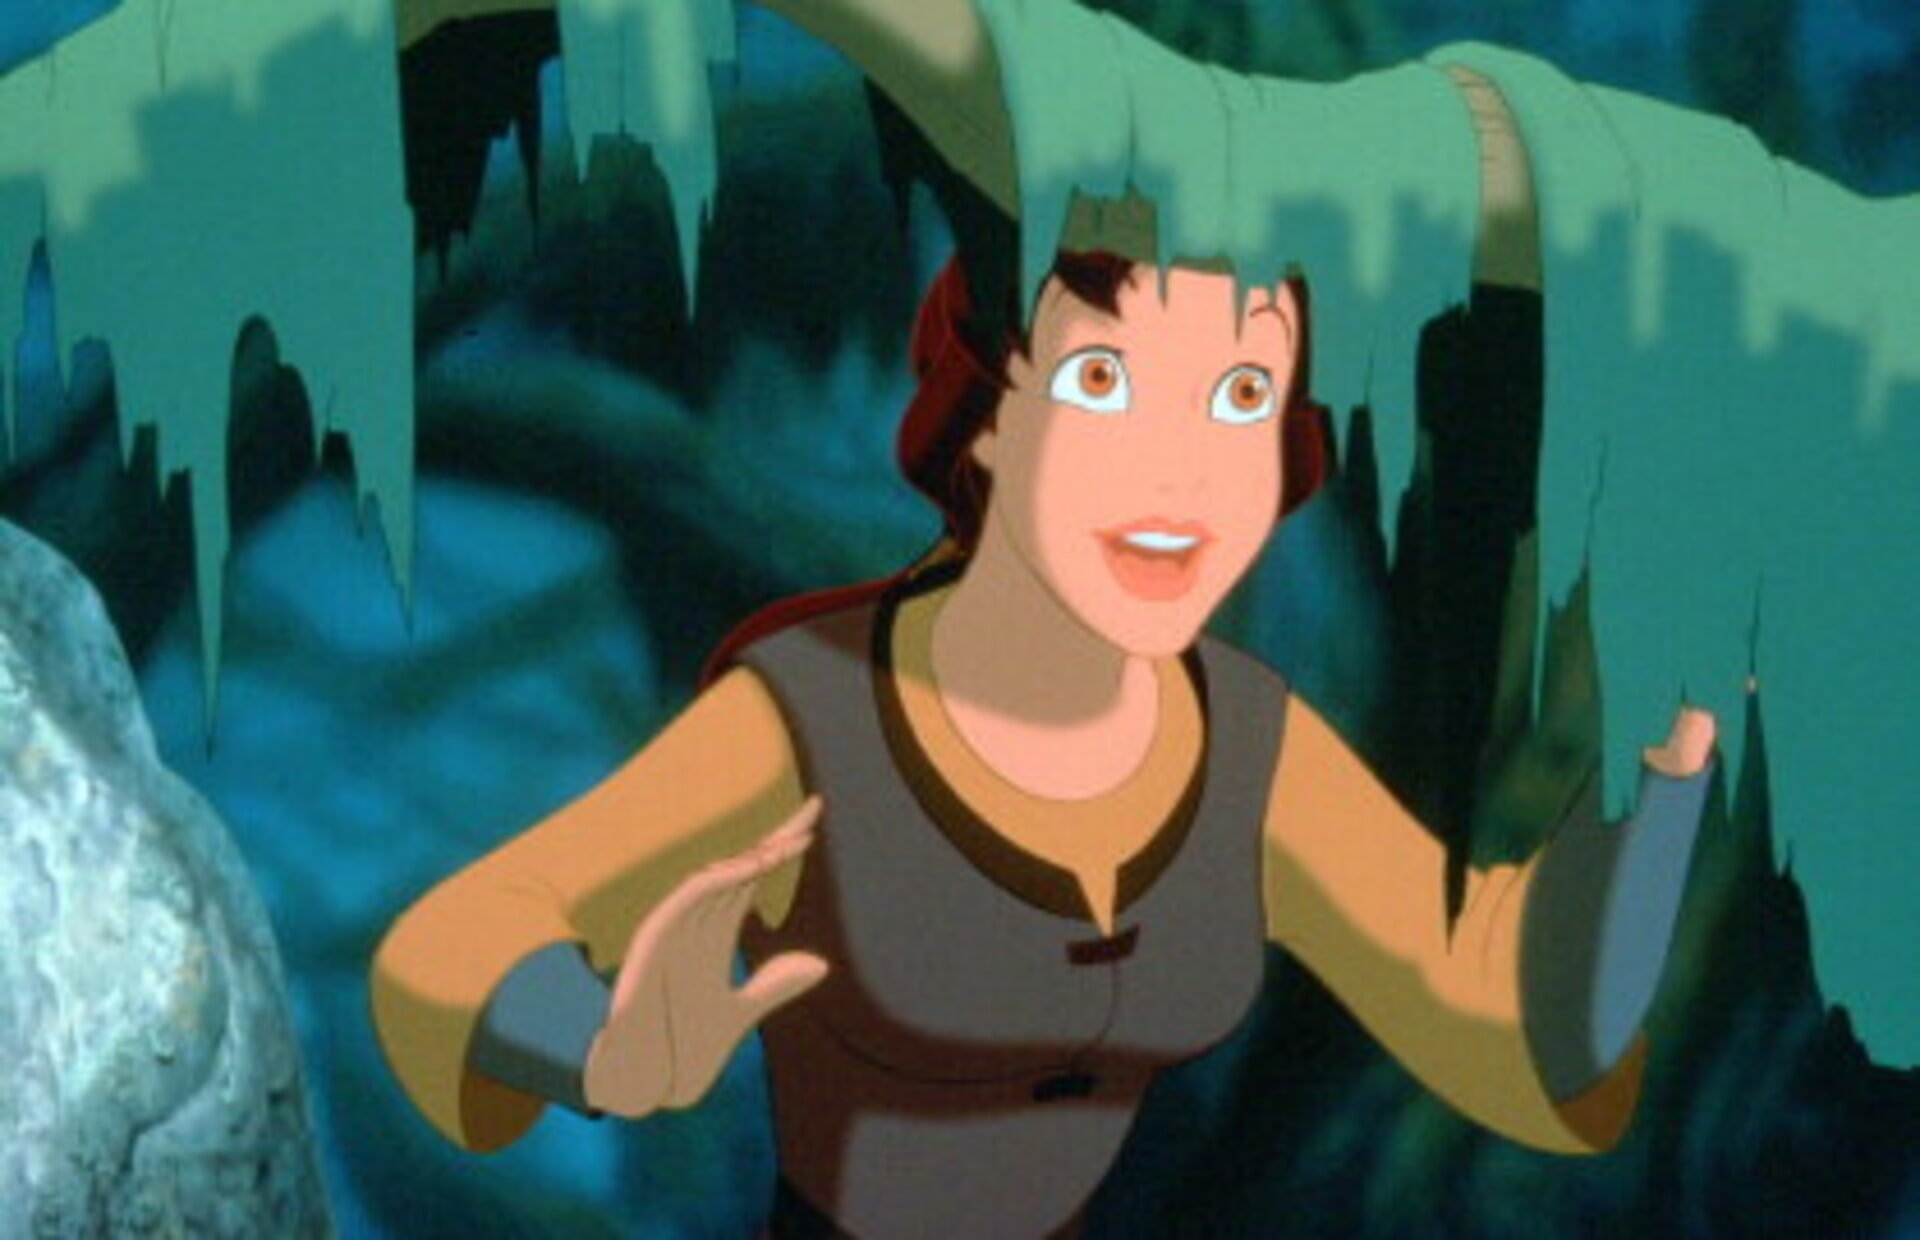 Quest for Camelot - Image 12